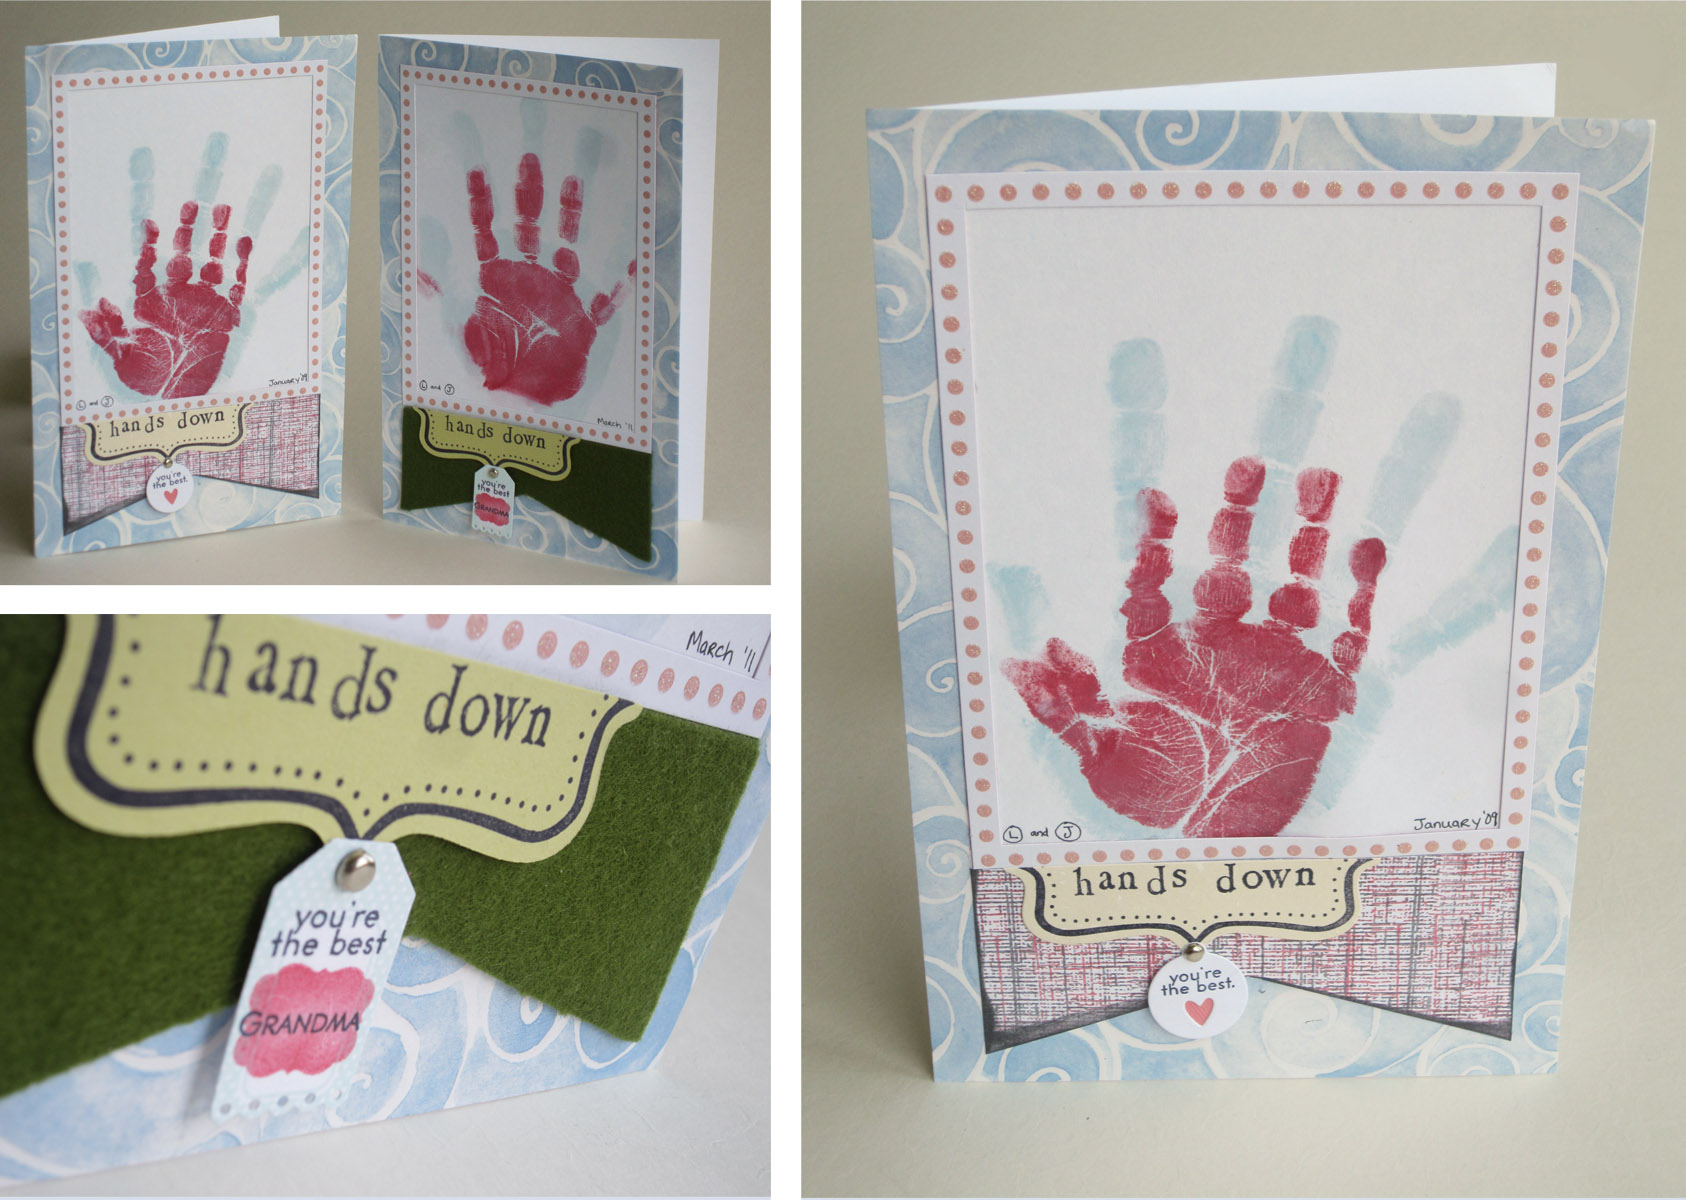 Creative Mothers Day Cards Part 2 Inspired By Family